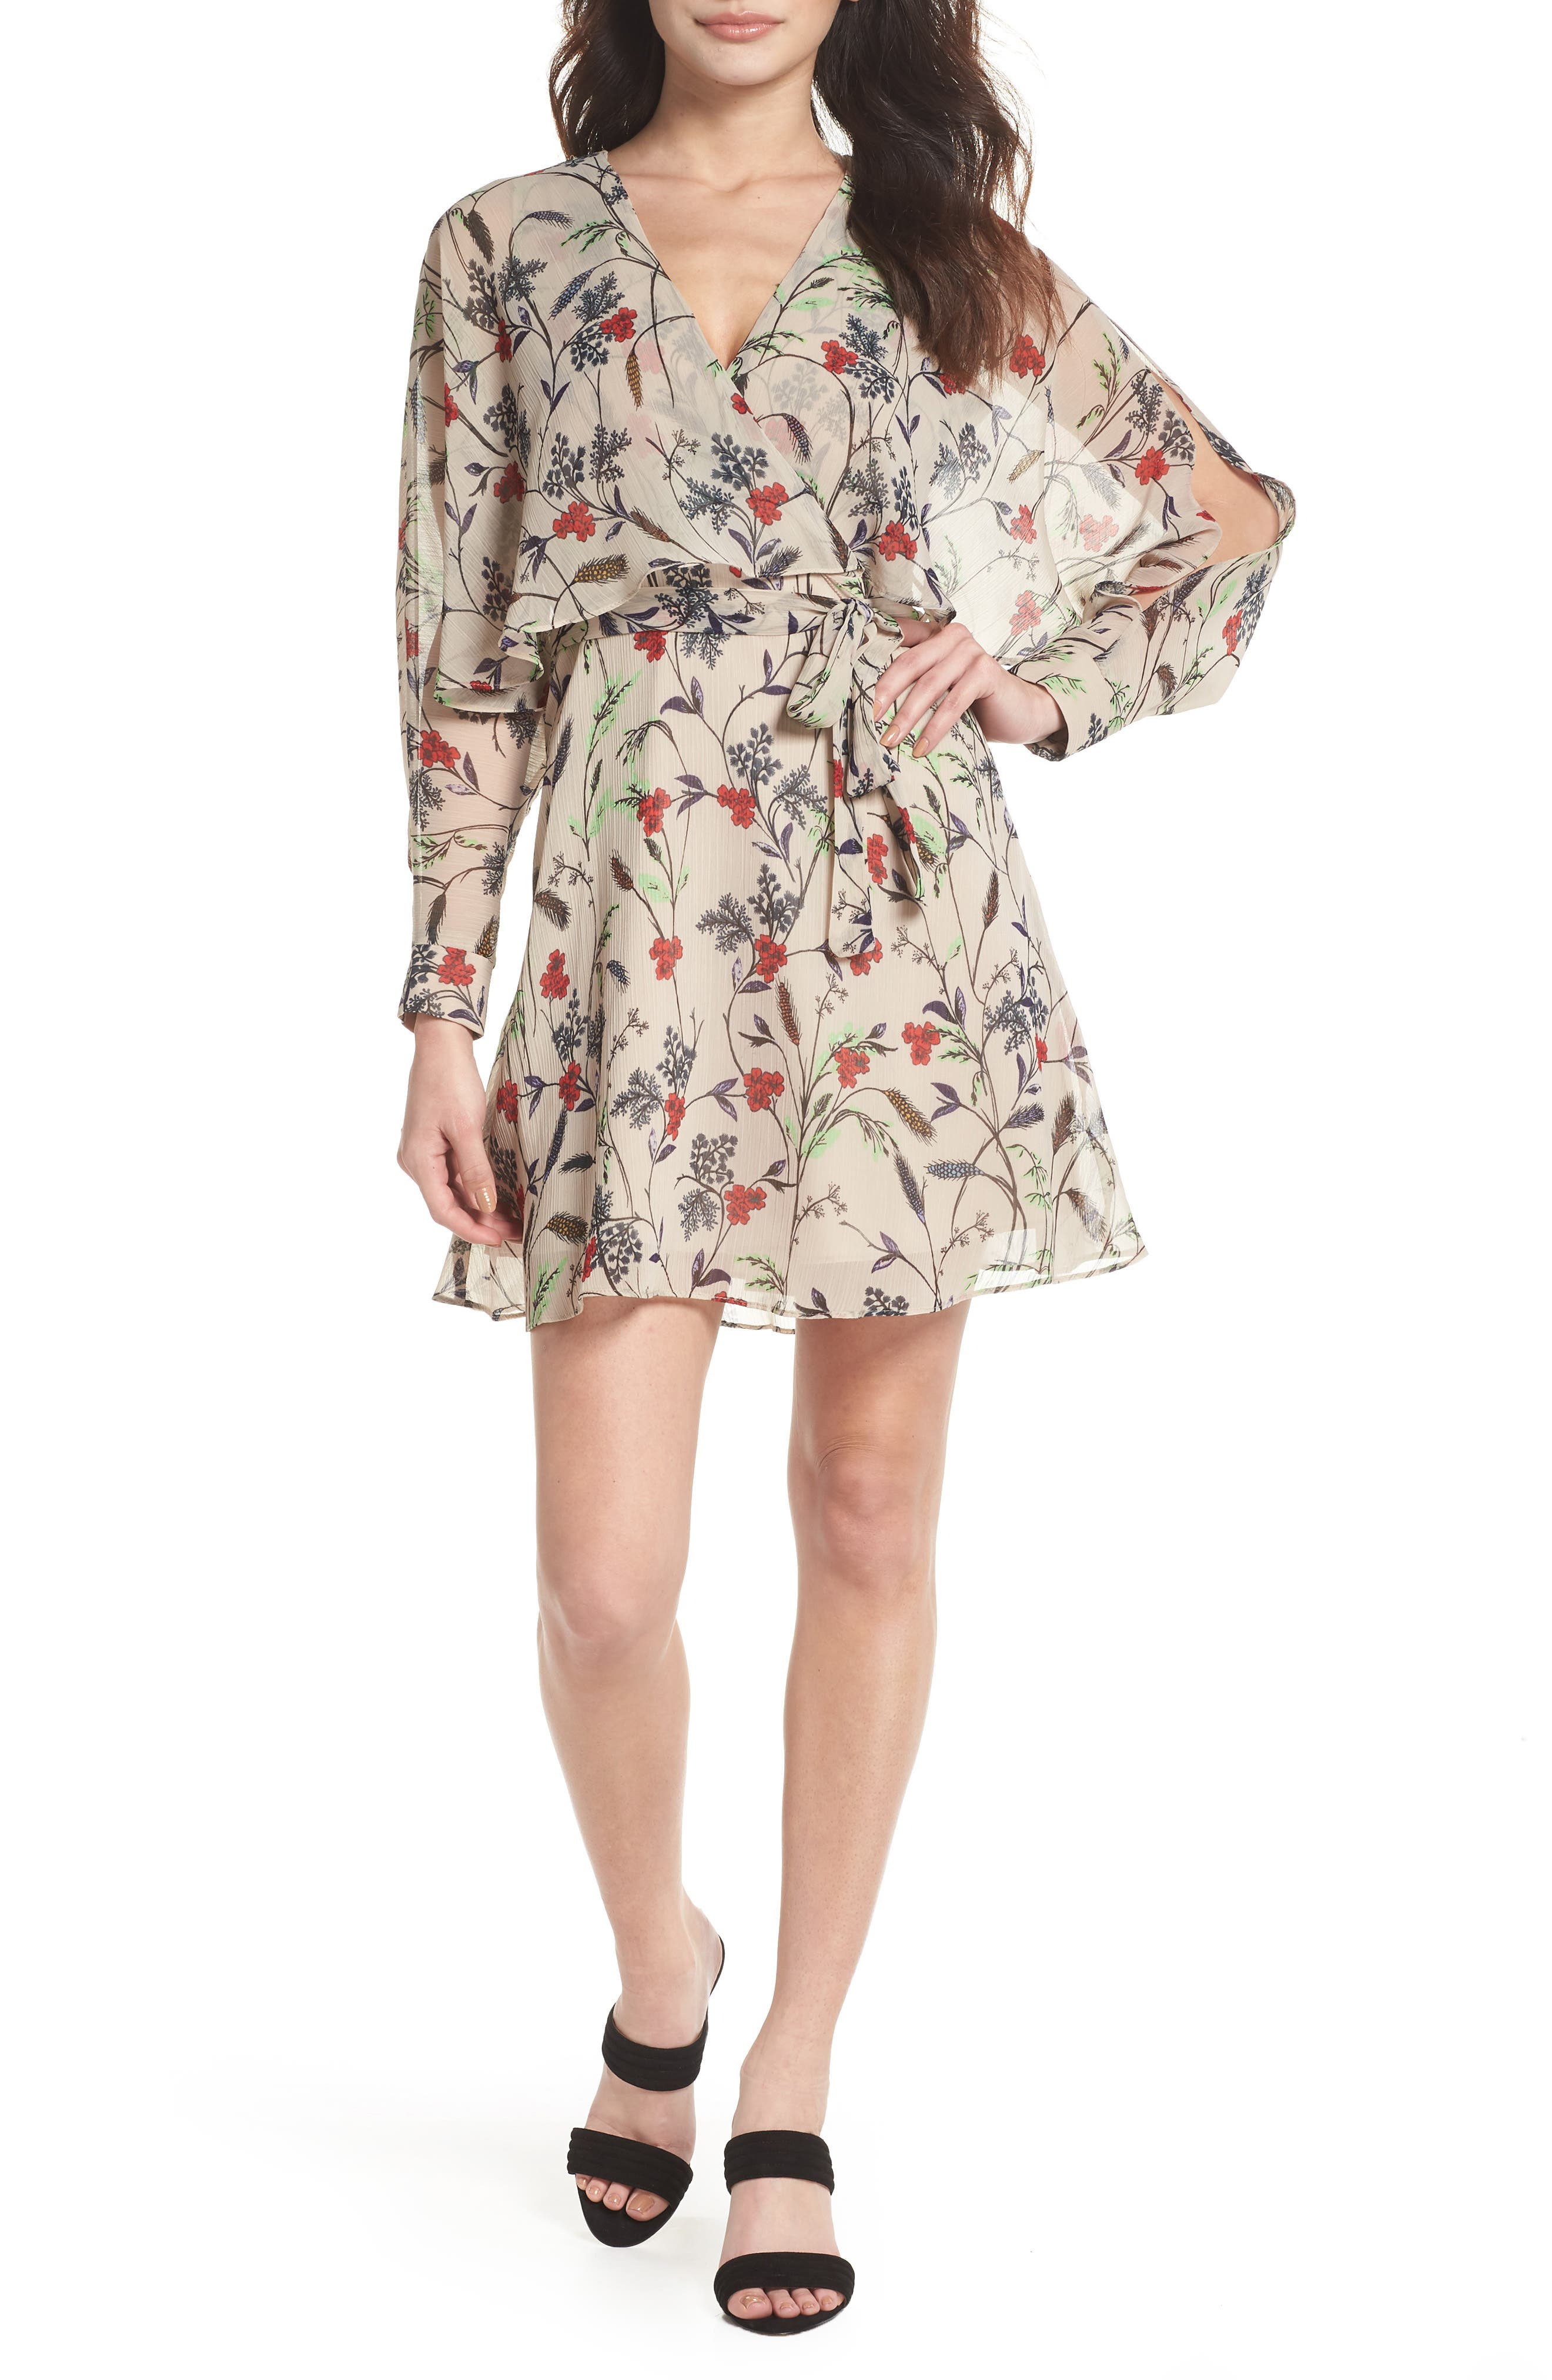 Yoryu Floral Chiffon Dress,                         Main,                         color, Beige/ Red